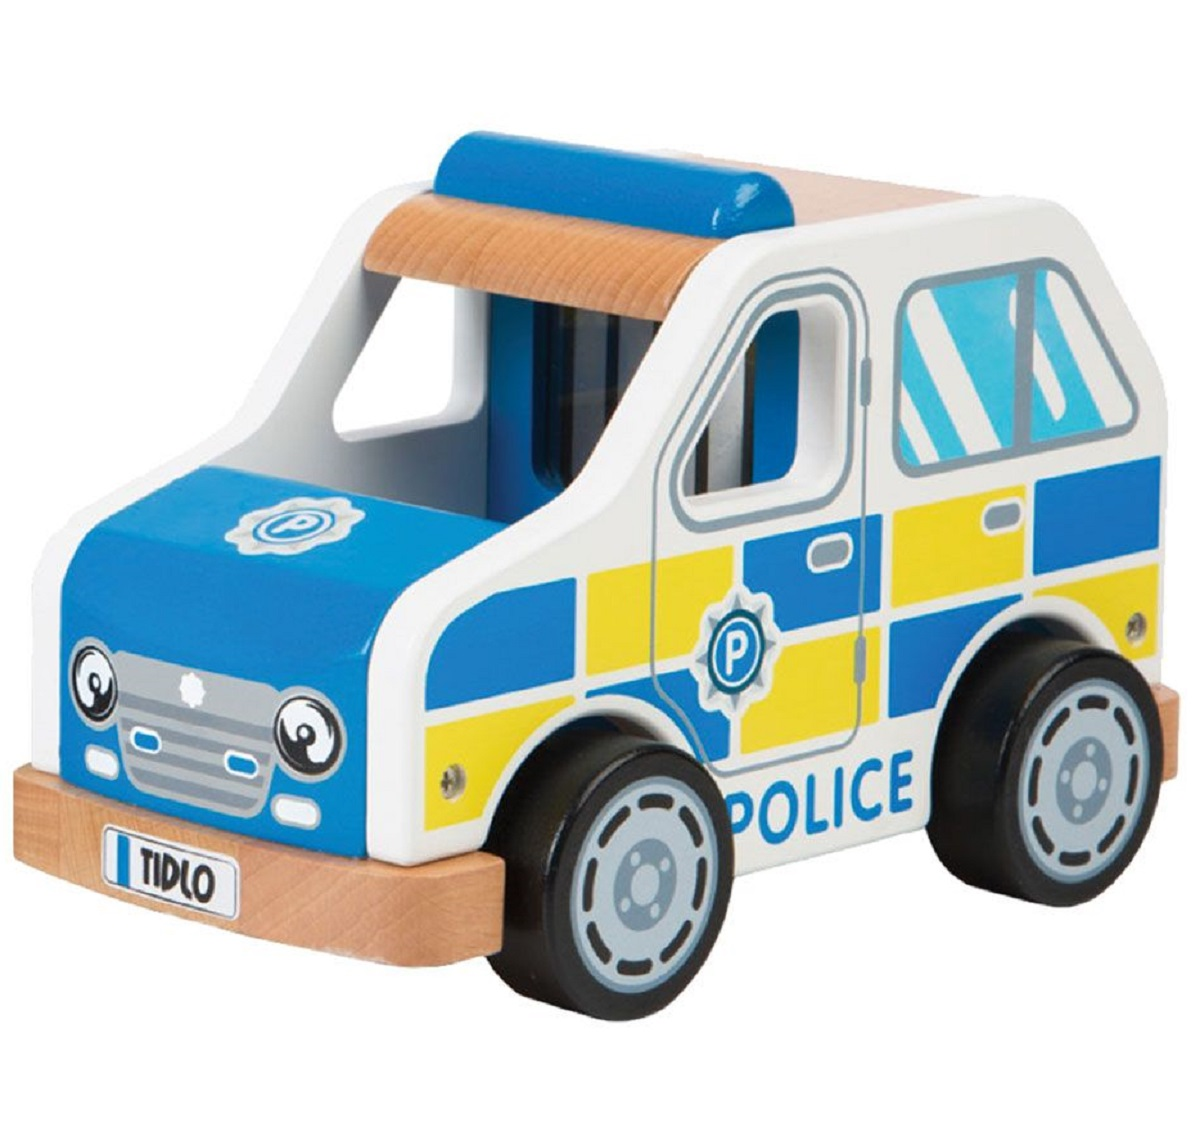 Toy Police Cars : Toy police cars ototrends